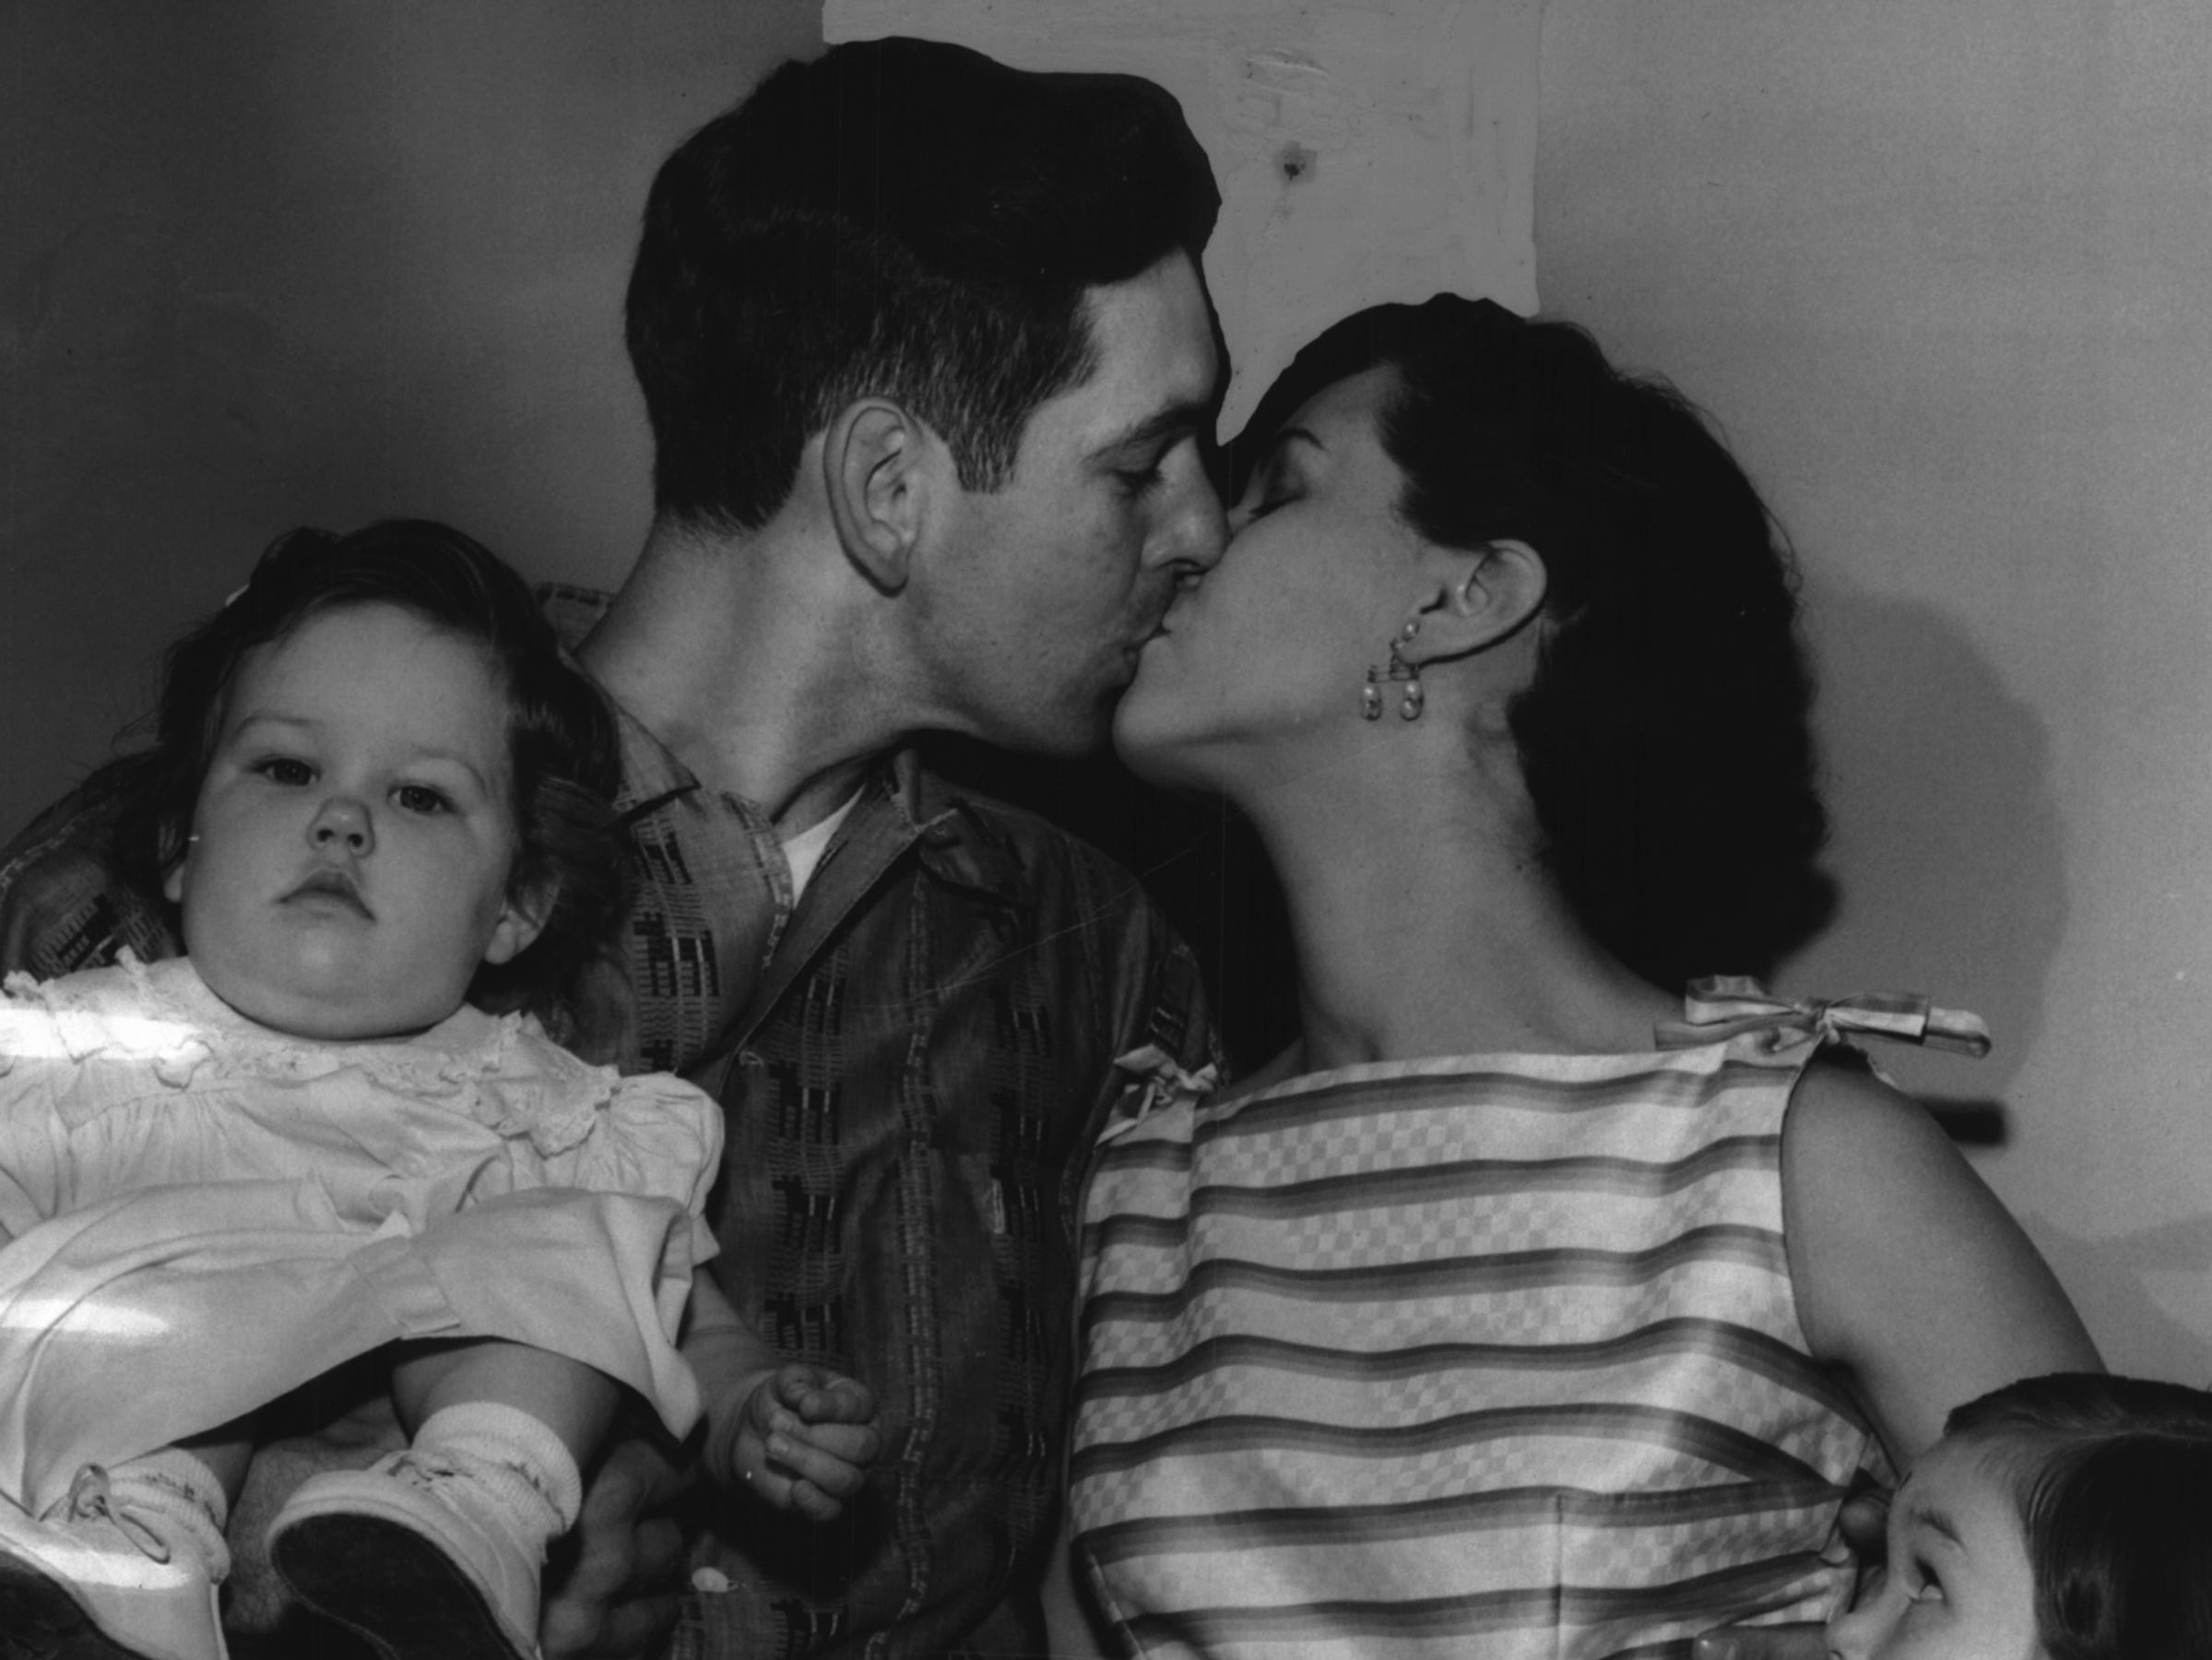 Johnny Klippstein, leaving for a day at the ball park, gets a kiss from his pretty wife Mary Ann. Watching is Mary Jo, 3. Barbara Kay, 1, showing little concern, sits on her father's arm.